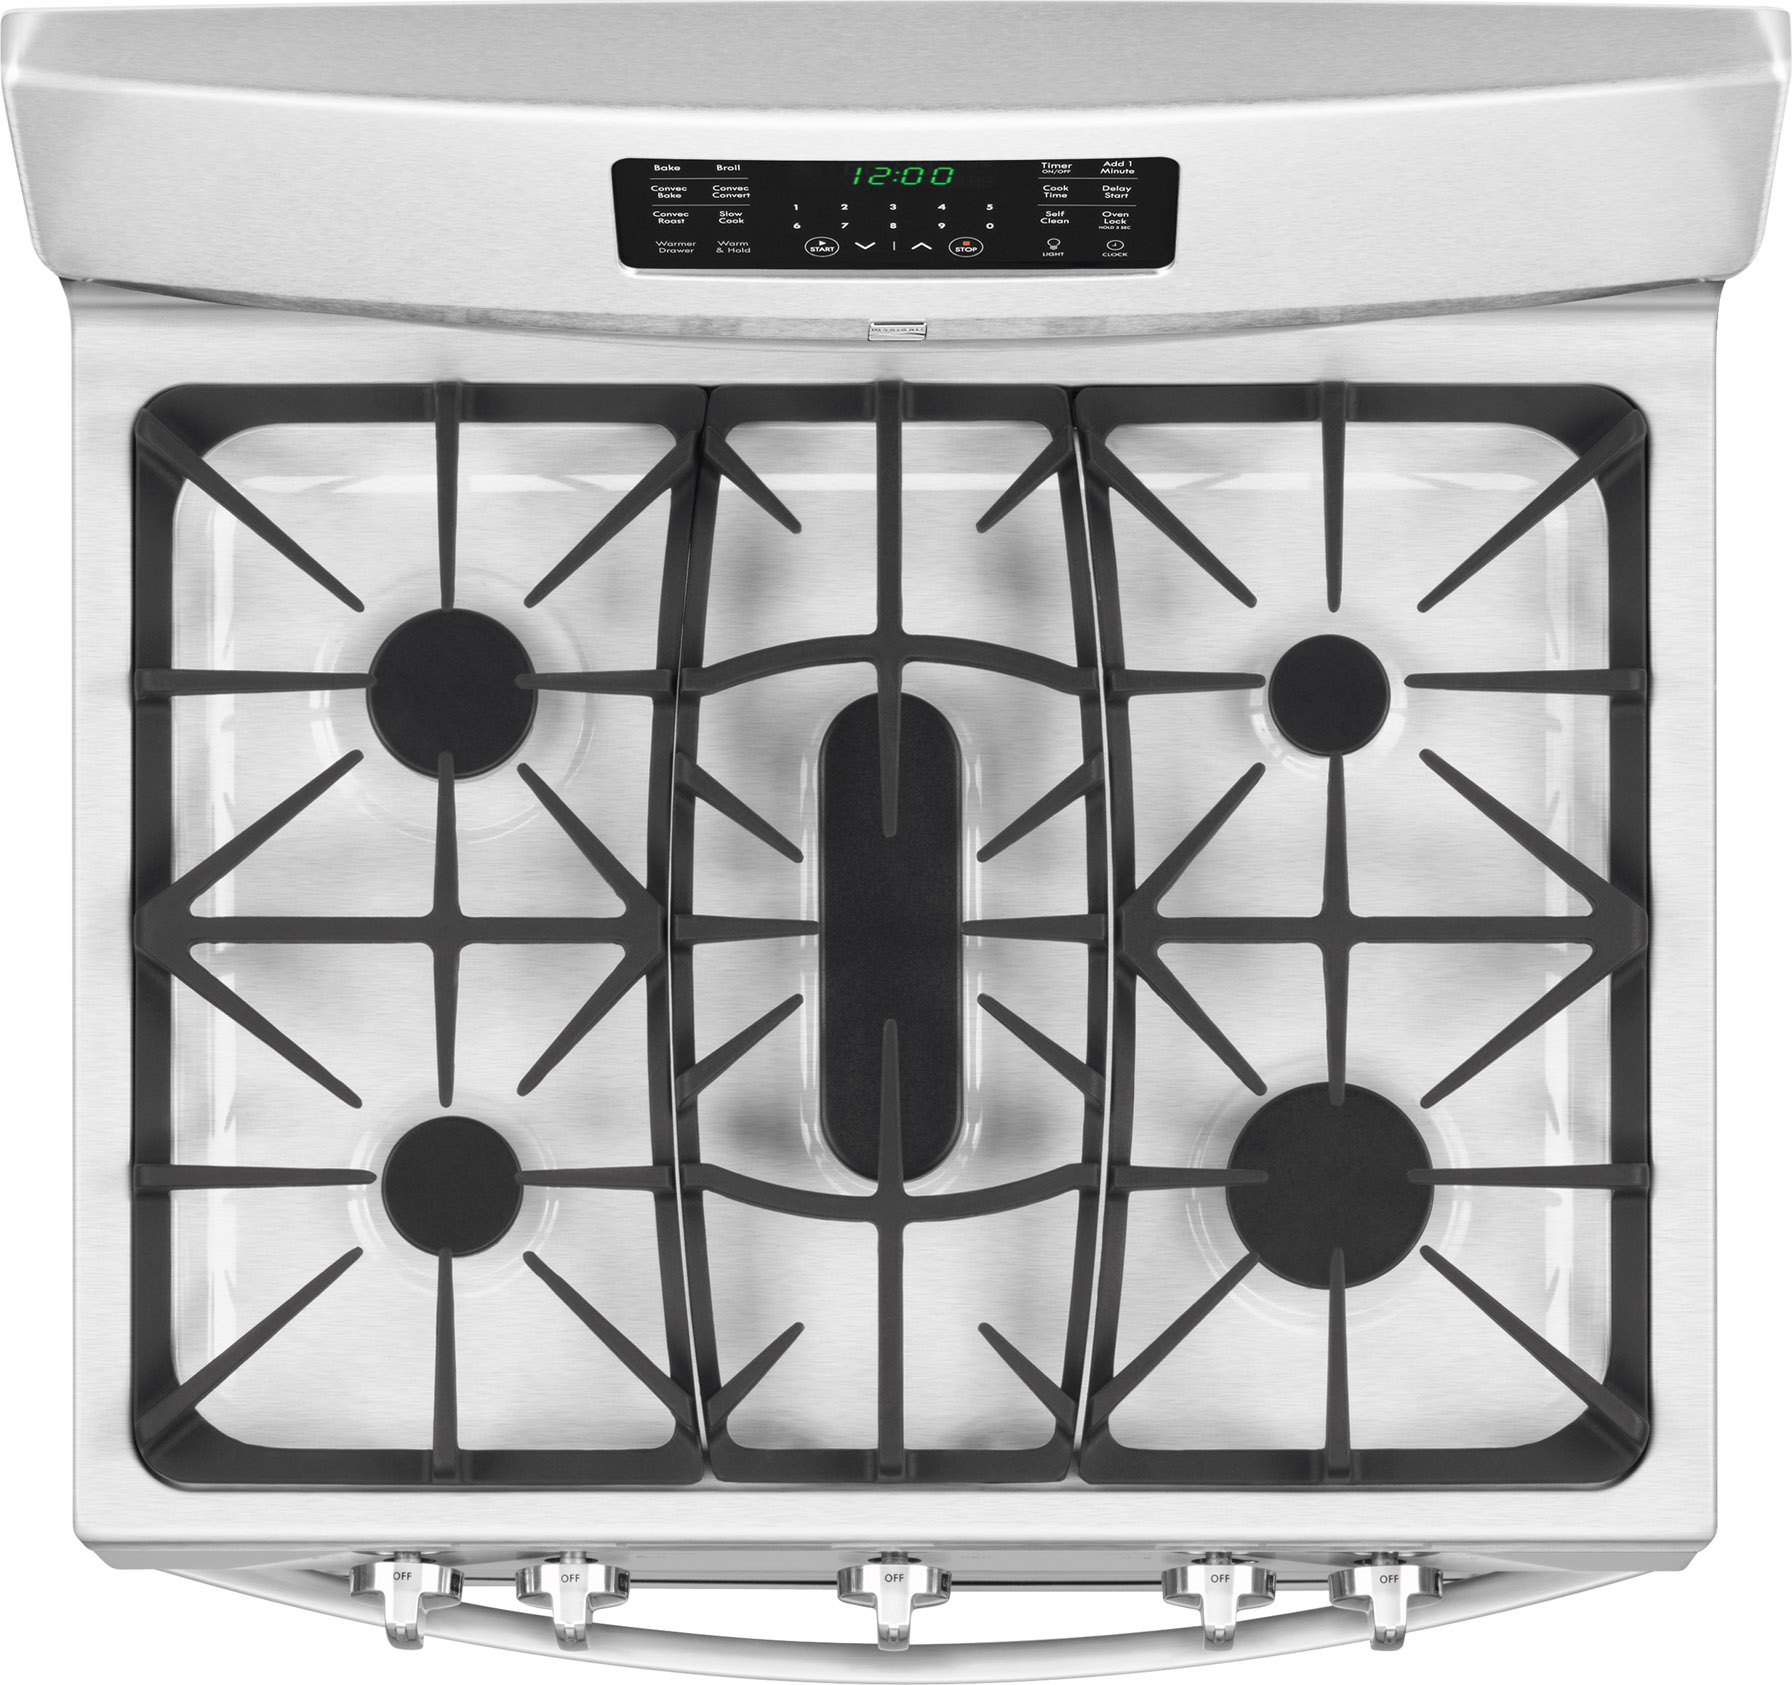 Kenmore 74343 5.6 cu. ft. Gas Range w/ Convection Oven - Stainless Steel